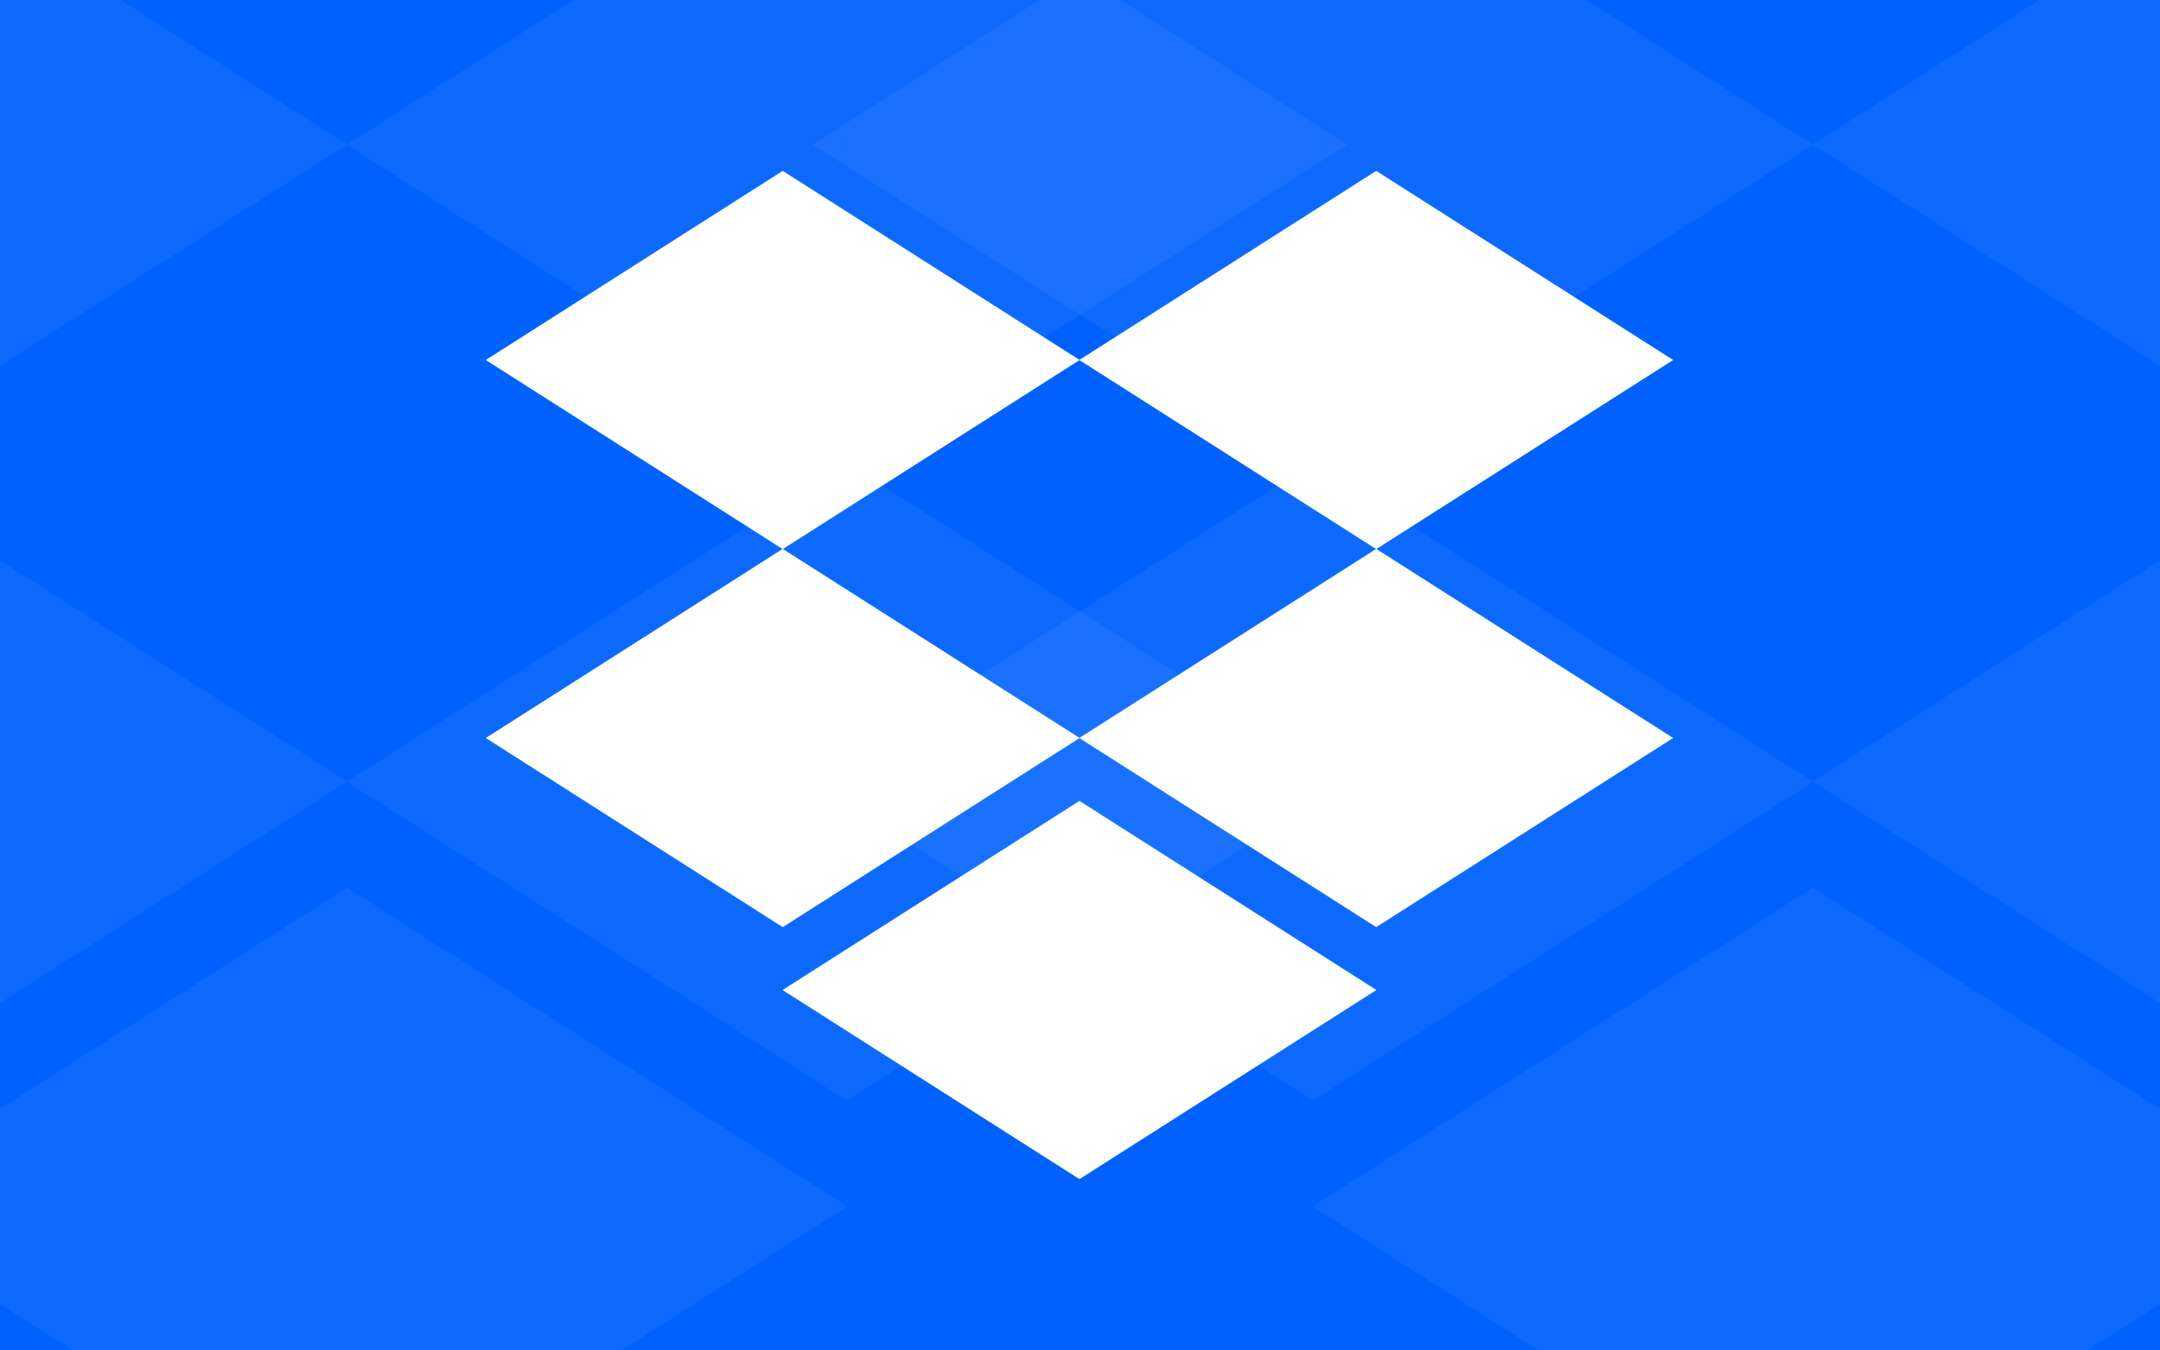 Dropbox also goes all-in on smart working